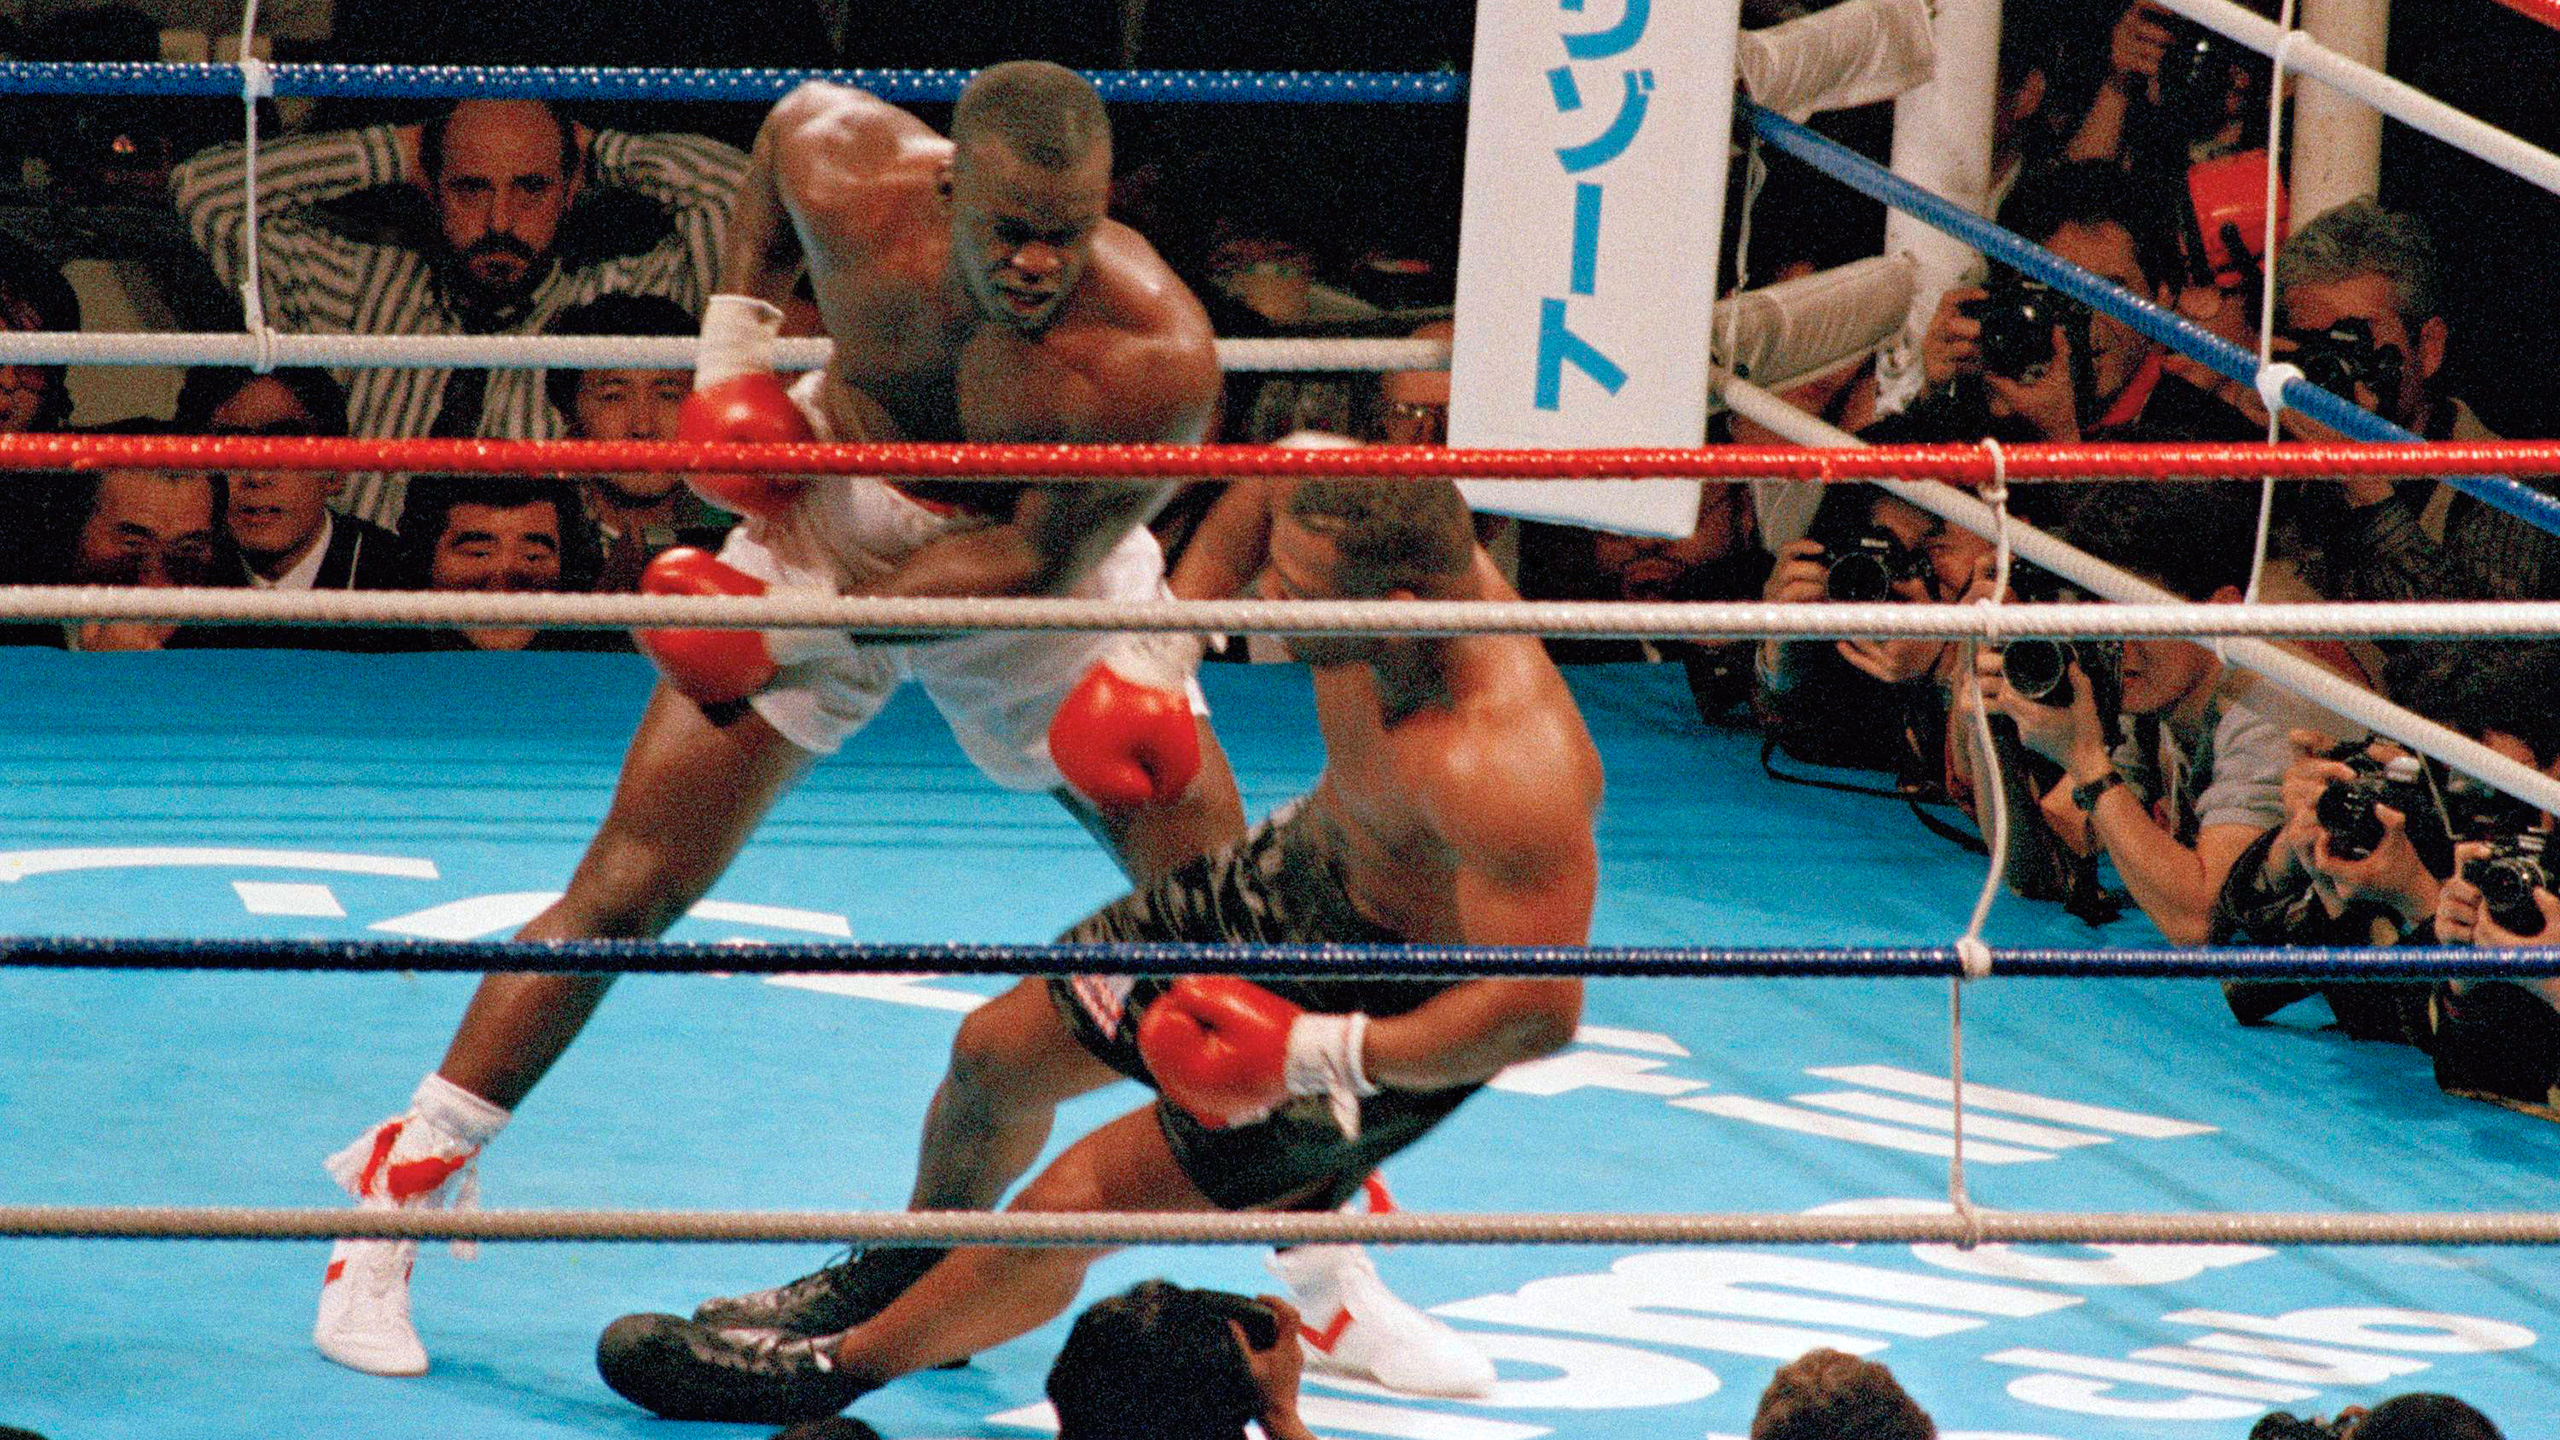 Buster Douglas vs. Mike Tyson (re-air)